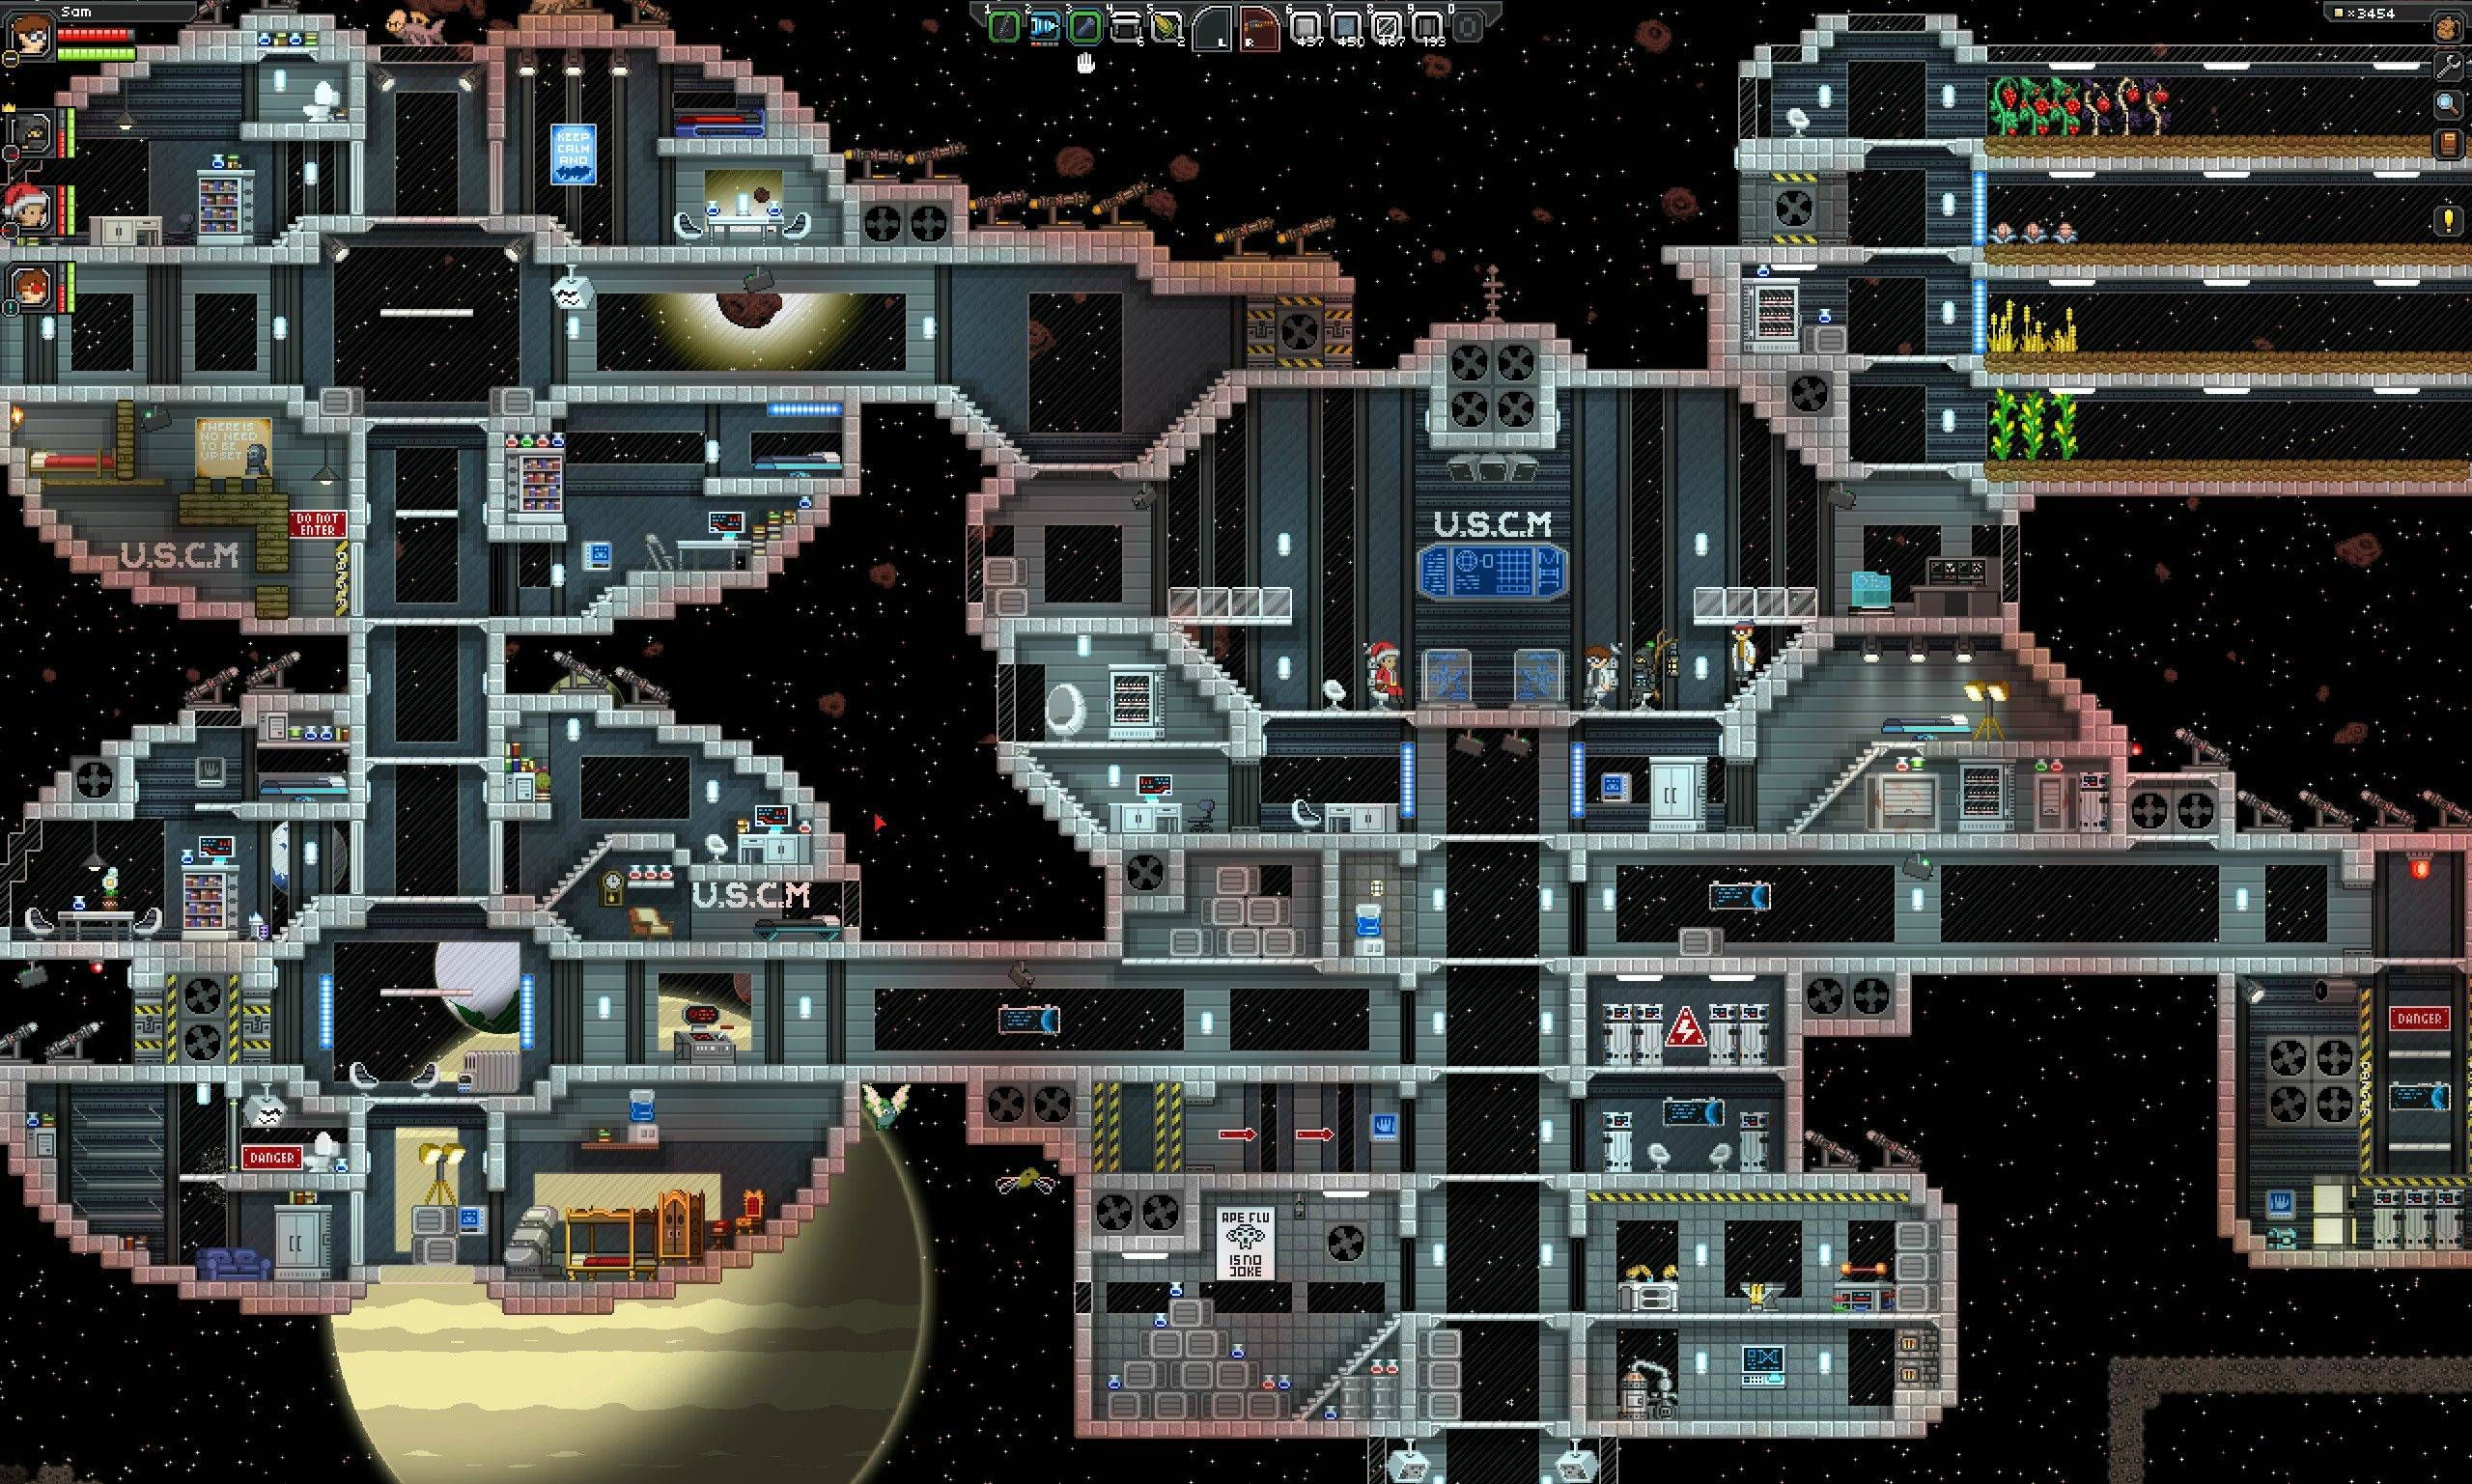 Starbound Huge Space Station via Reddit user Nize | Video